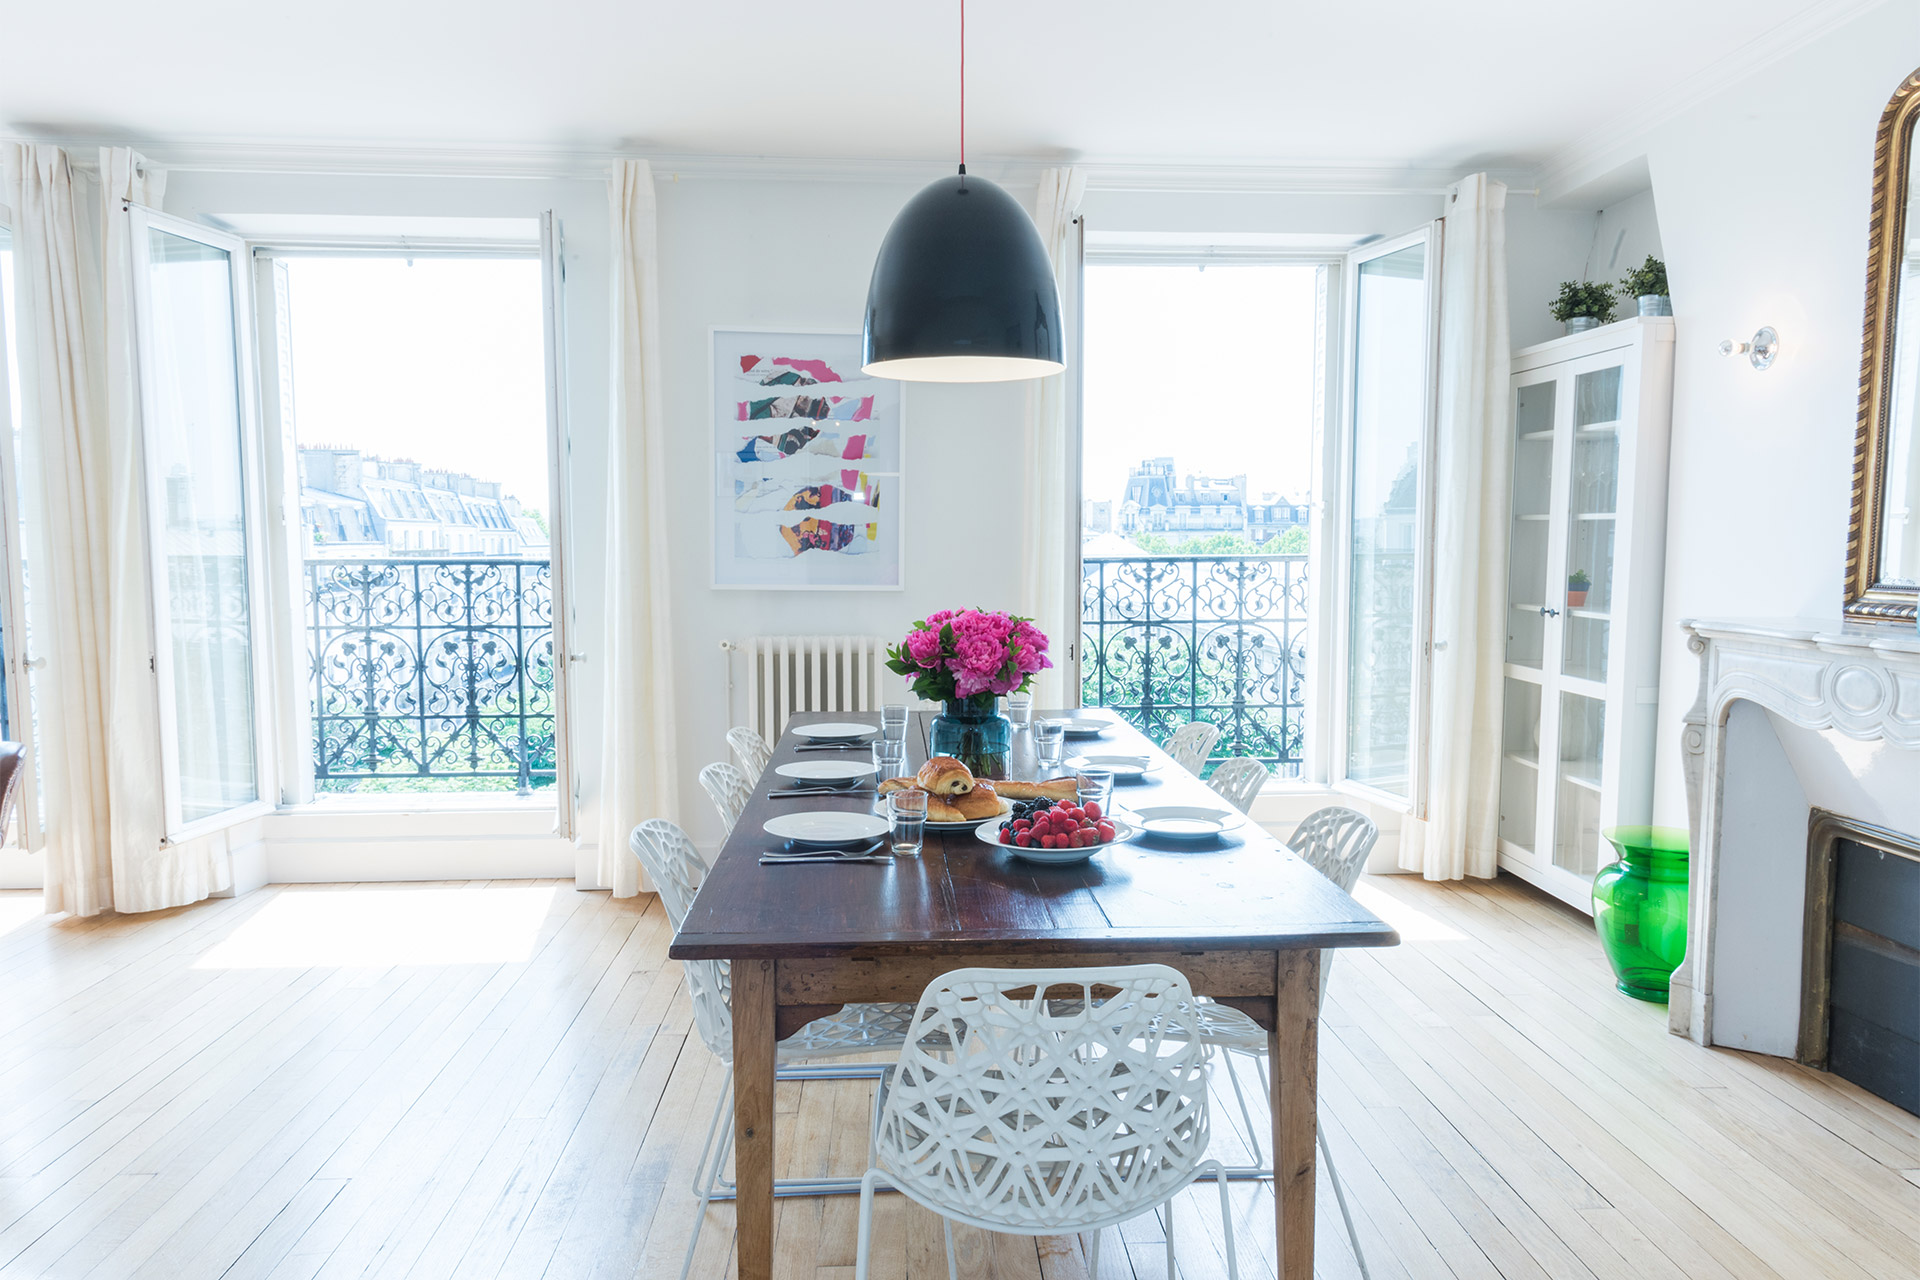 Dining area perfect for entertaining in the Mondeuse vacation rental offered by Paris Perfect